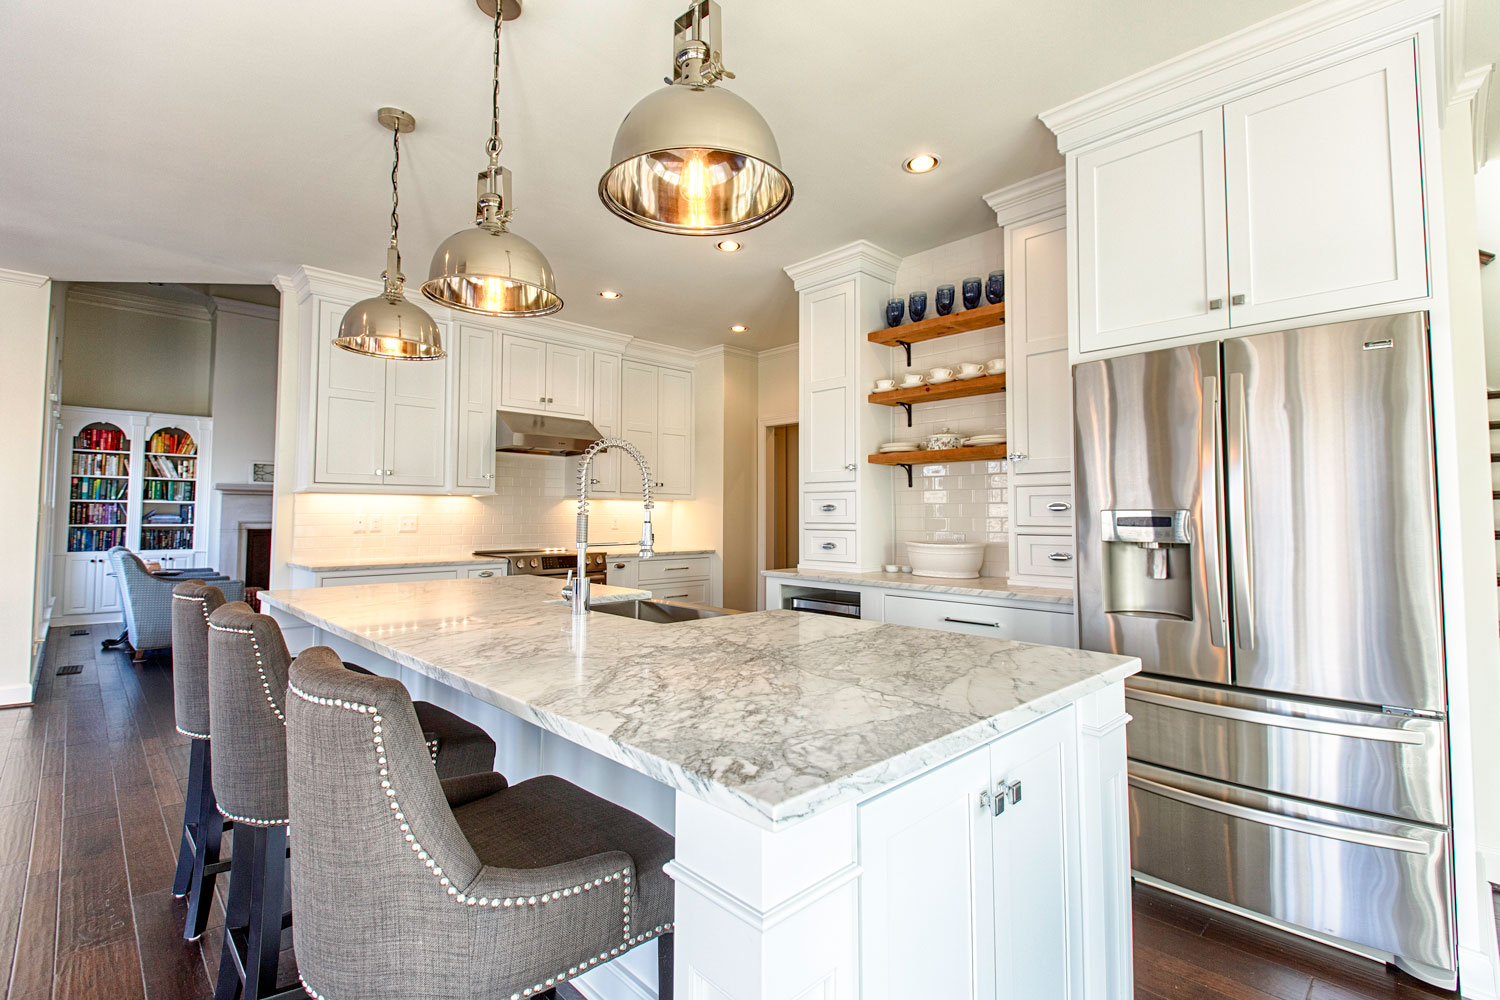 Choosing the right countertop is a complicated decision. Learn your options.